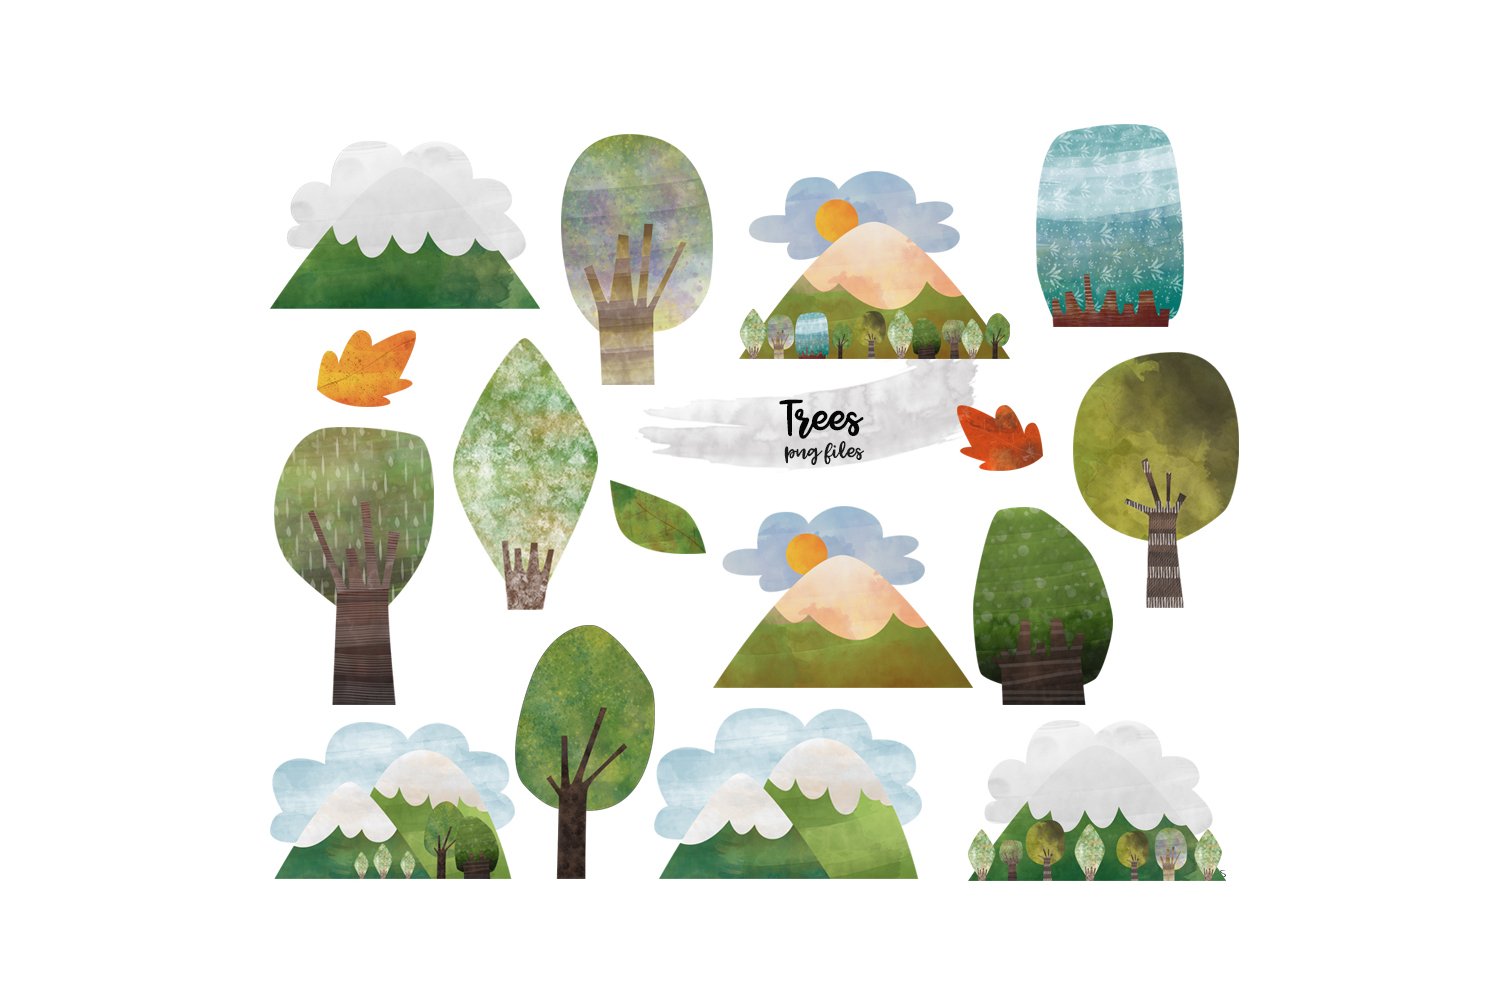 Watercolor Mountain Tree clipart. Mountain and tree clipart example image 11